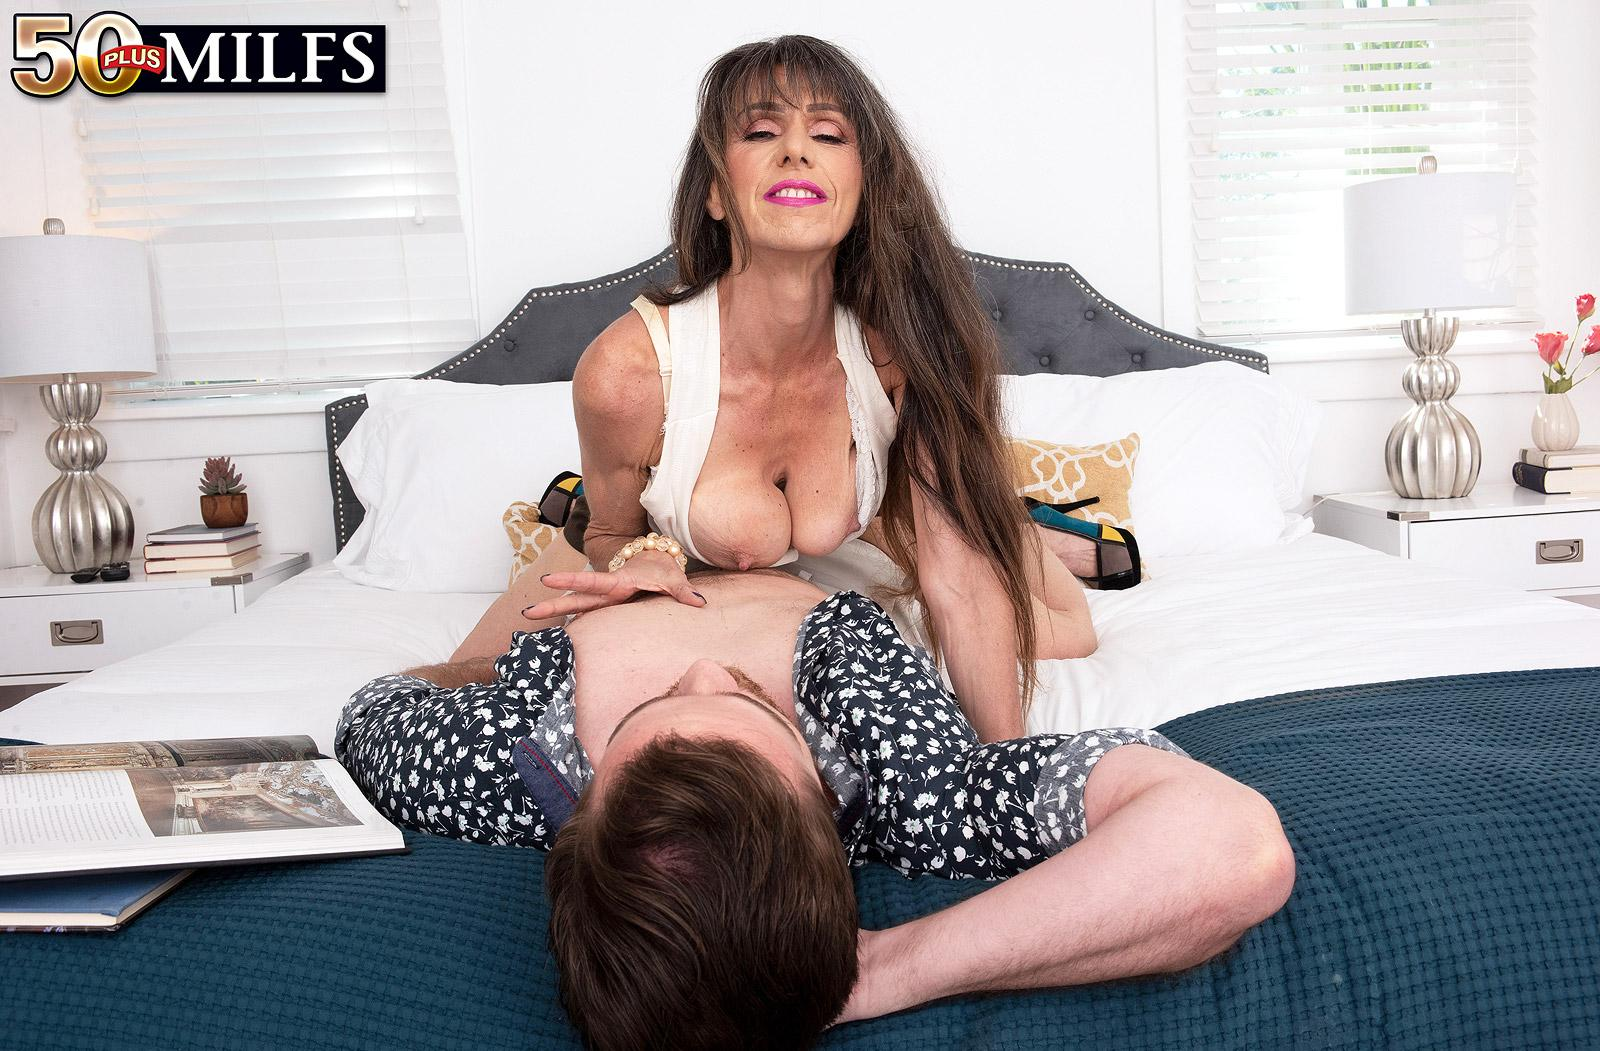 skinny, slightly scrawny and athletic older women gets fucked in her tighty arsehole so hard, that it hurts a bit picture 10